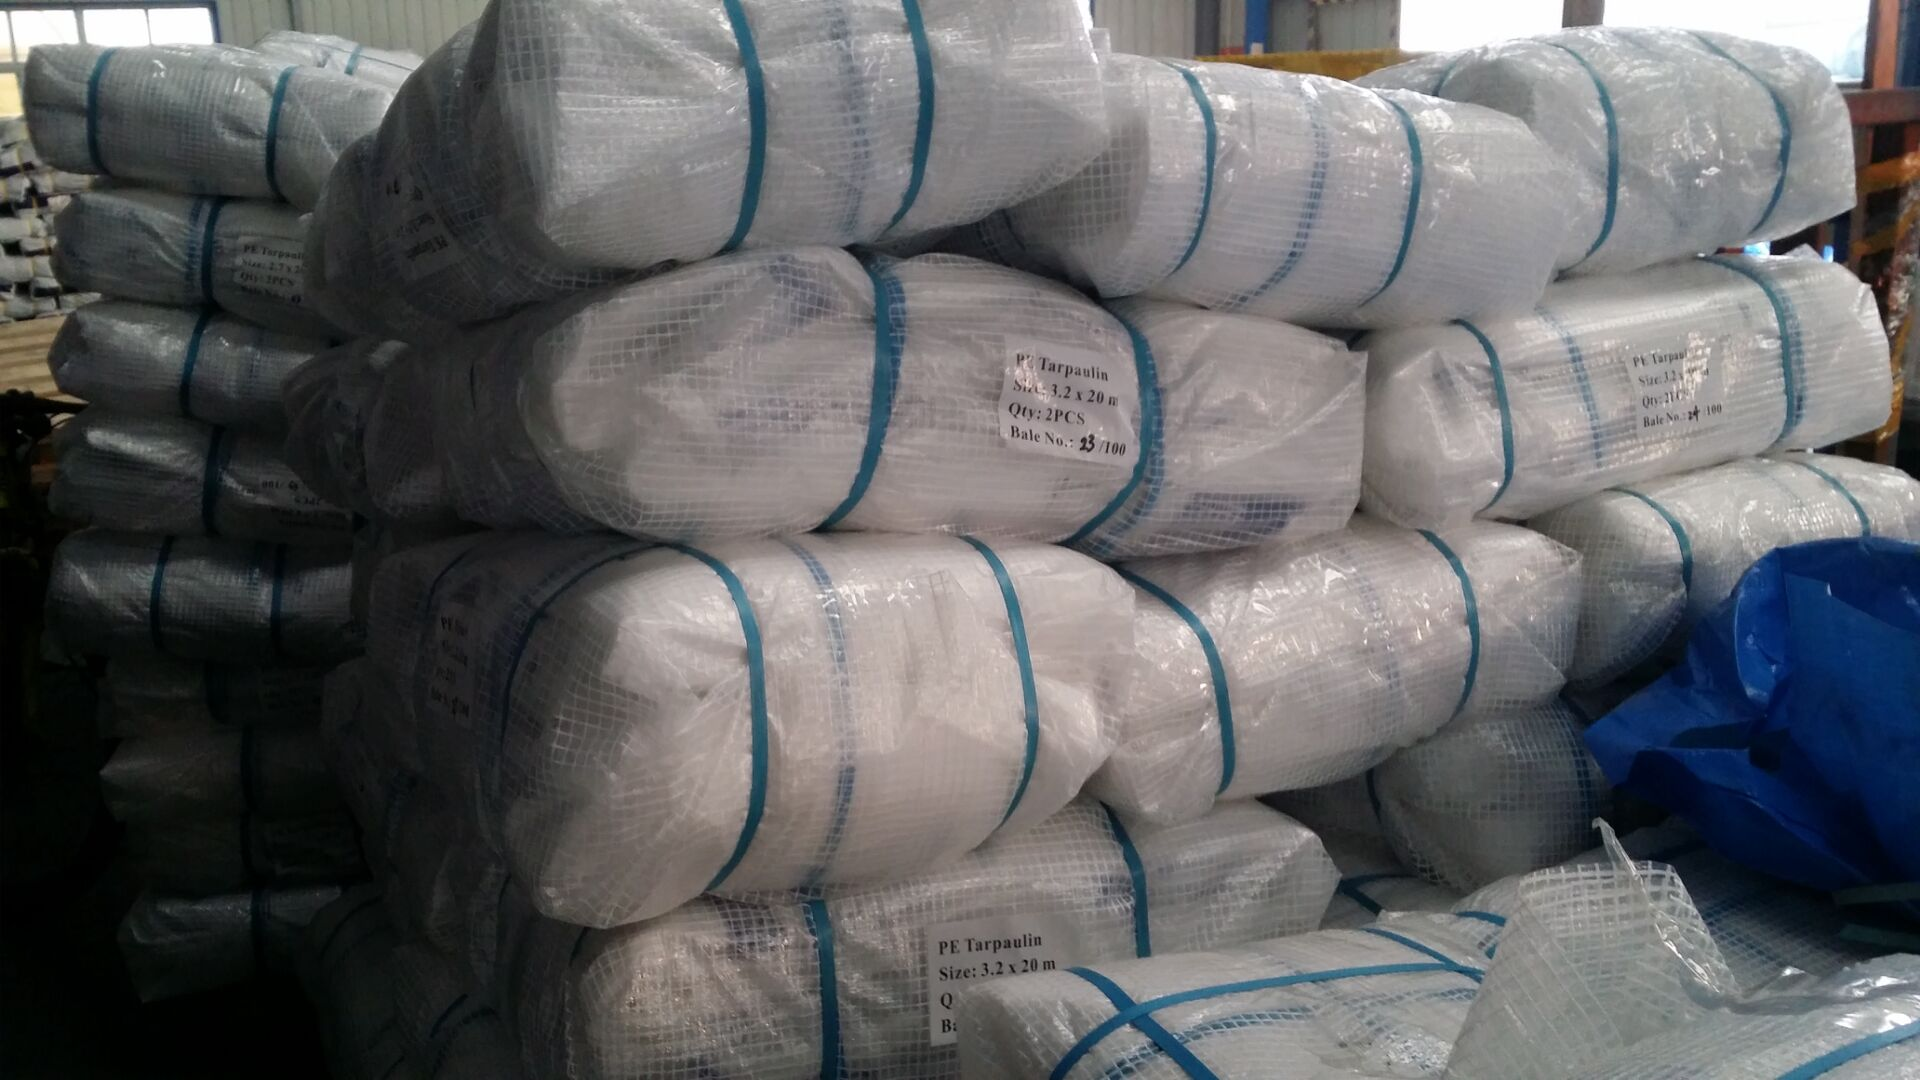 PE leno tarpaulin sheet packing